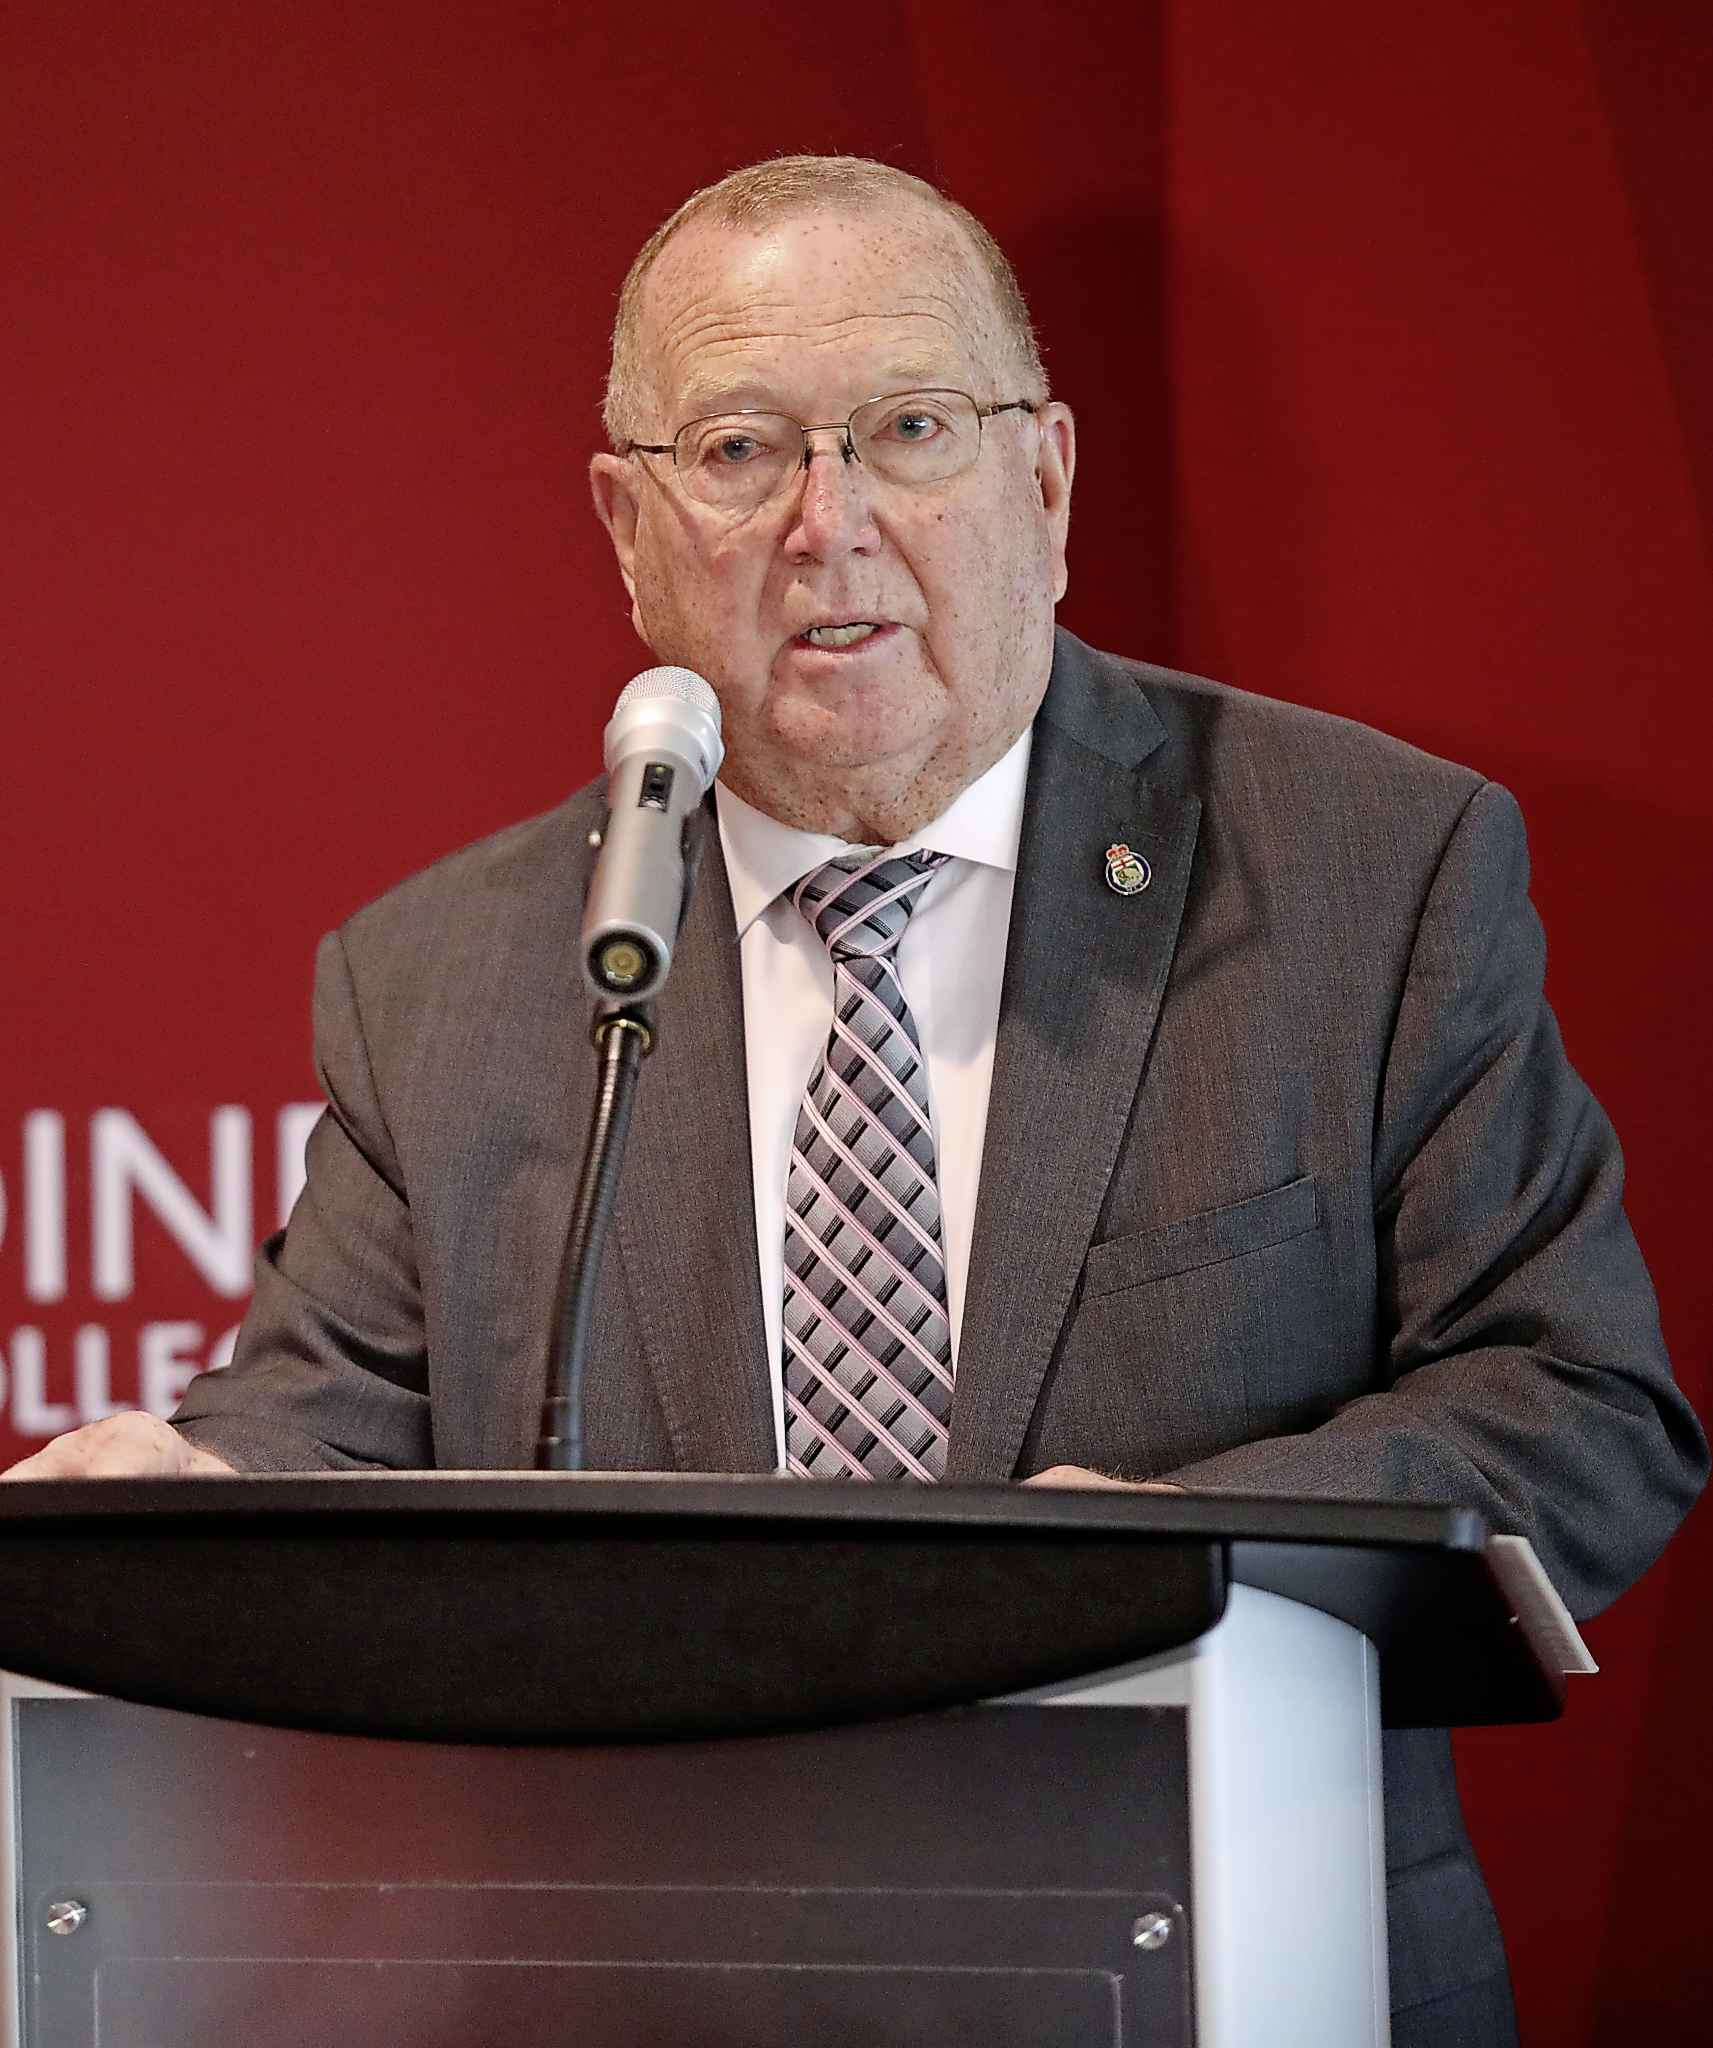 Provincial Agriculture Minister Ralph Eichler thinks the Trudeau government hasn't done enough to resolve the country's trade issues with China.